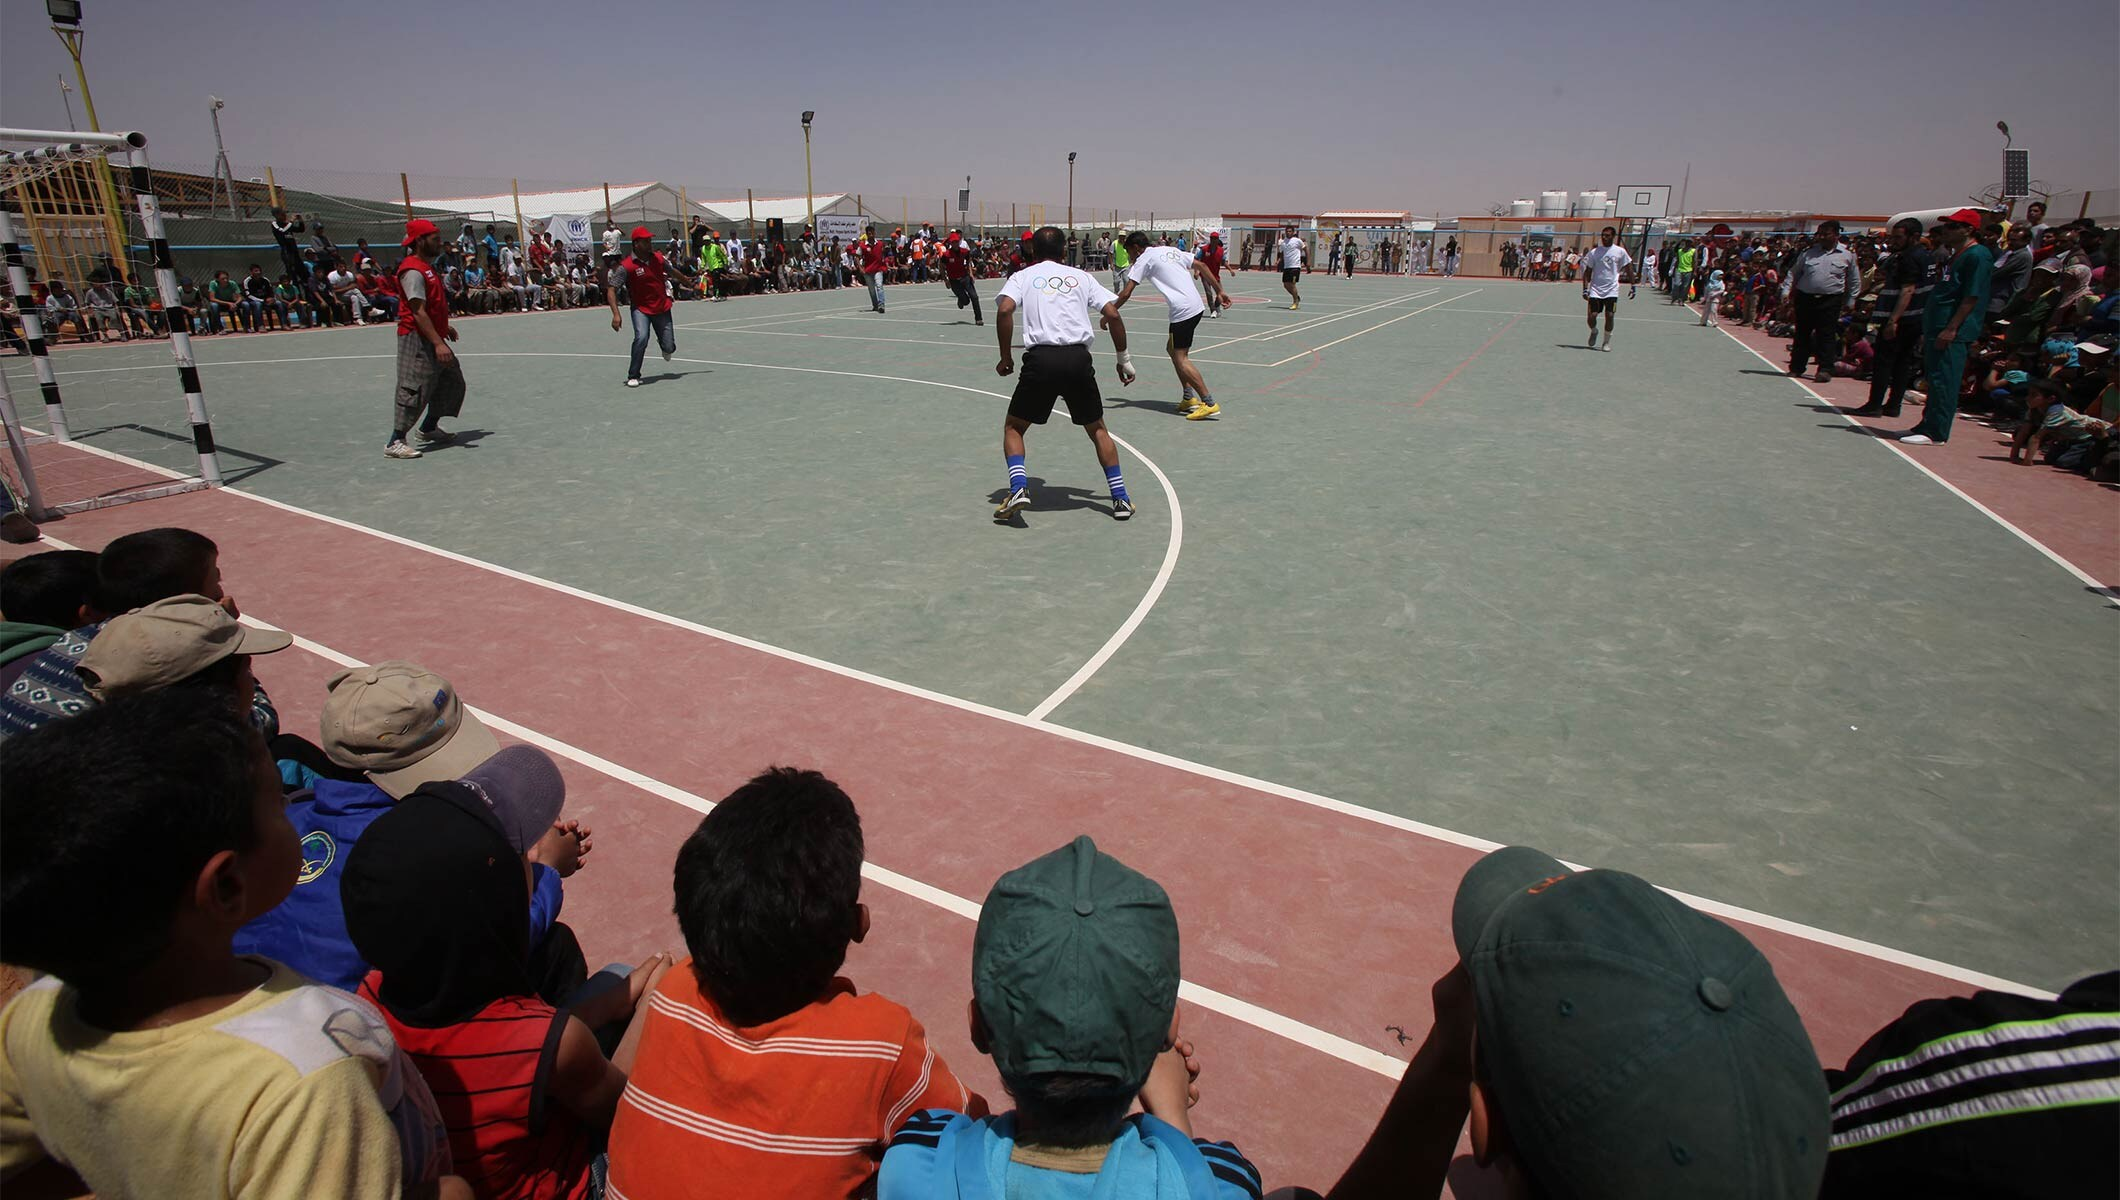 Why Sporting events are so important to the local community